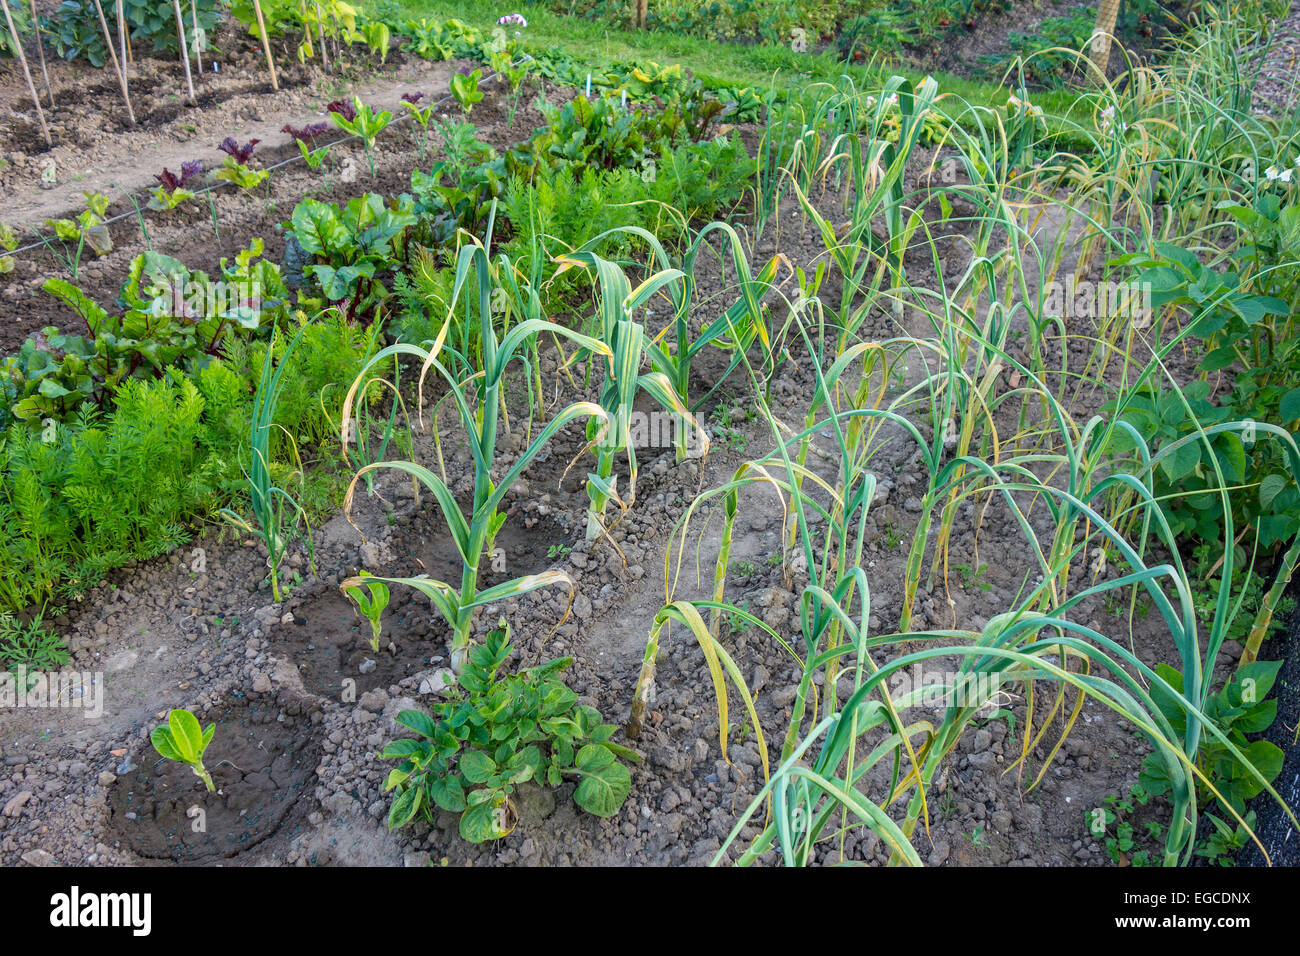 Tidy Allotment Patch Plot Home Grown Vegetables - Stock Image